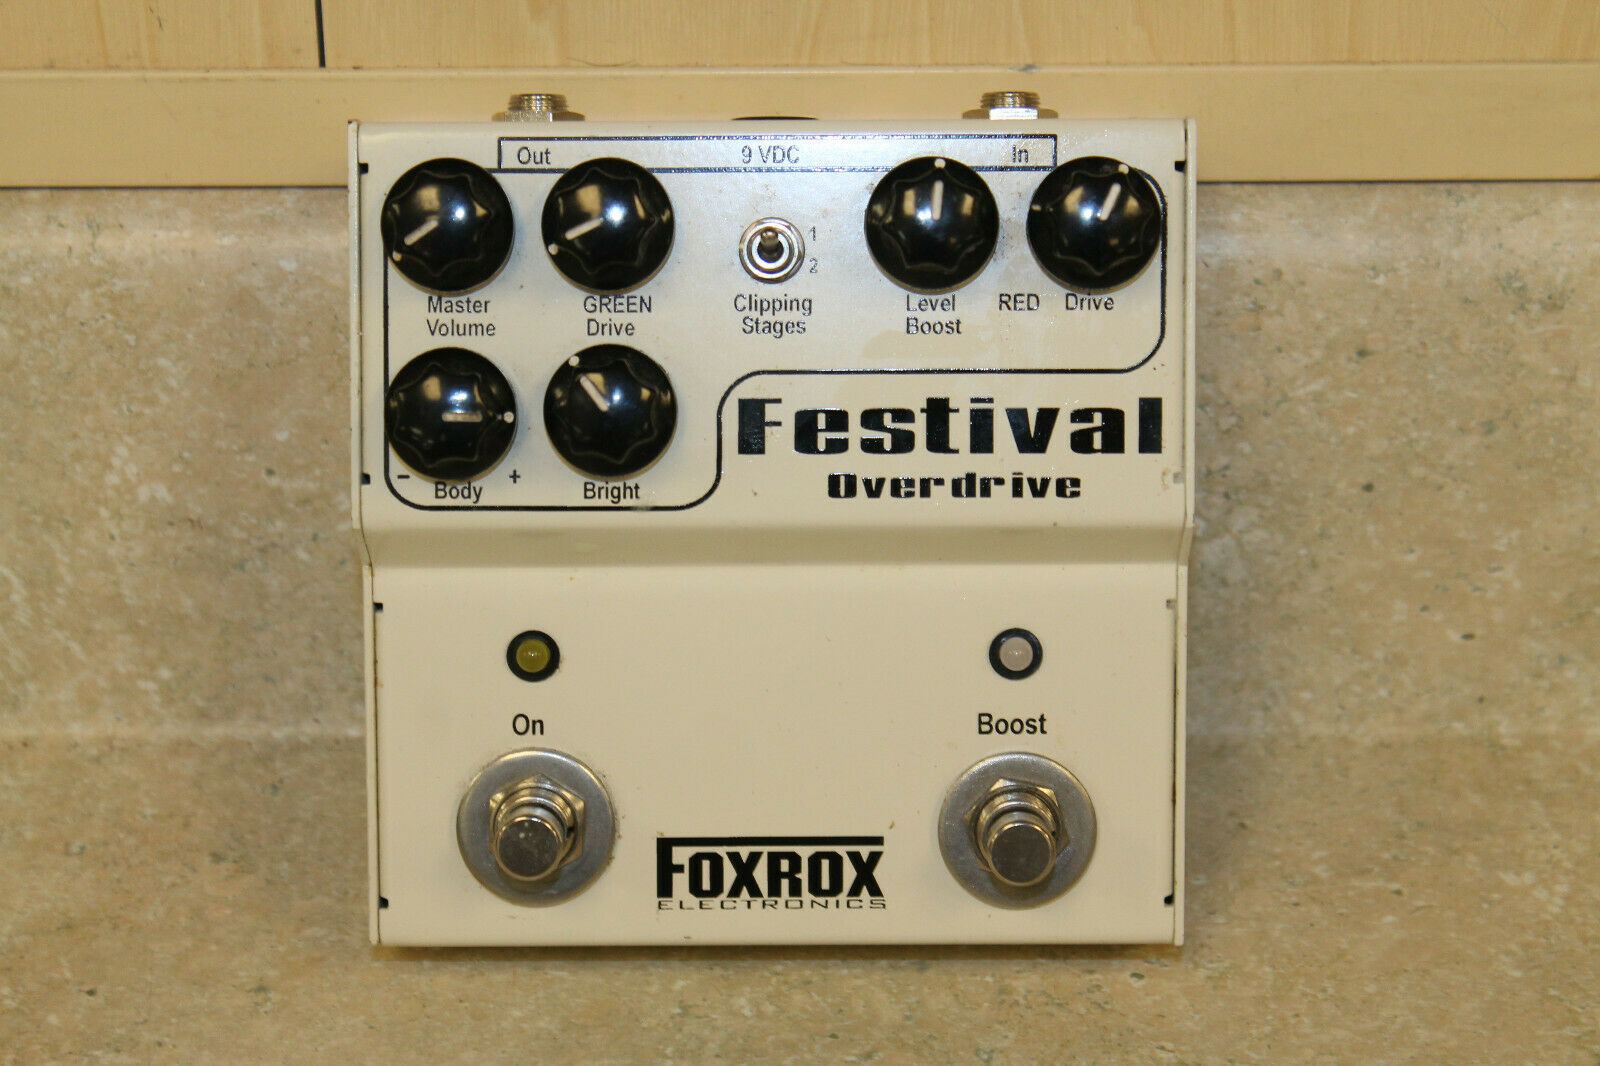 FoxRox Electronics Festival Overdrive Guitar Effects Pedal  Pre-owned